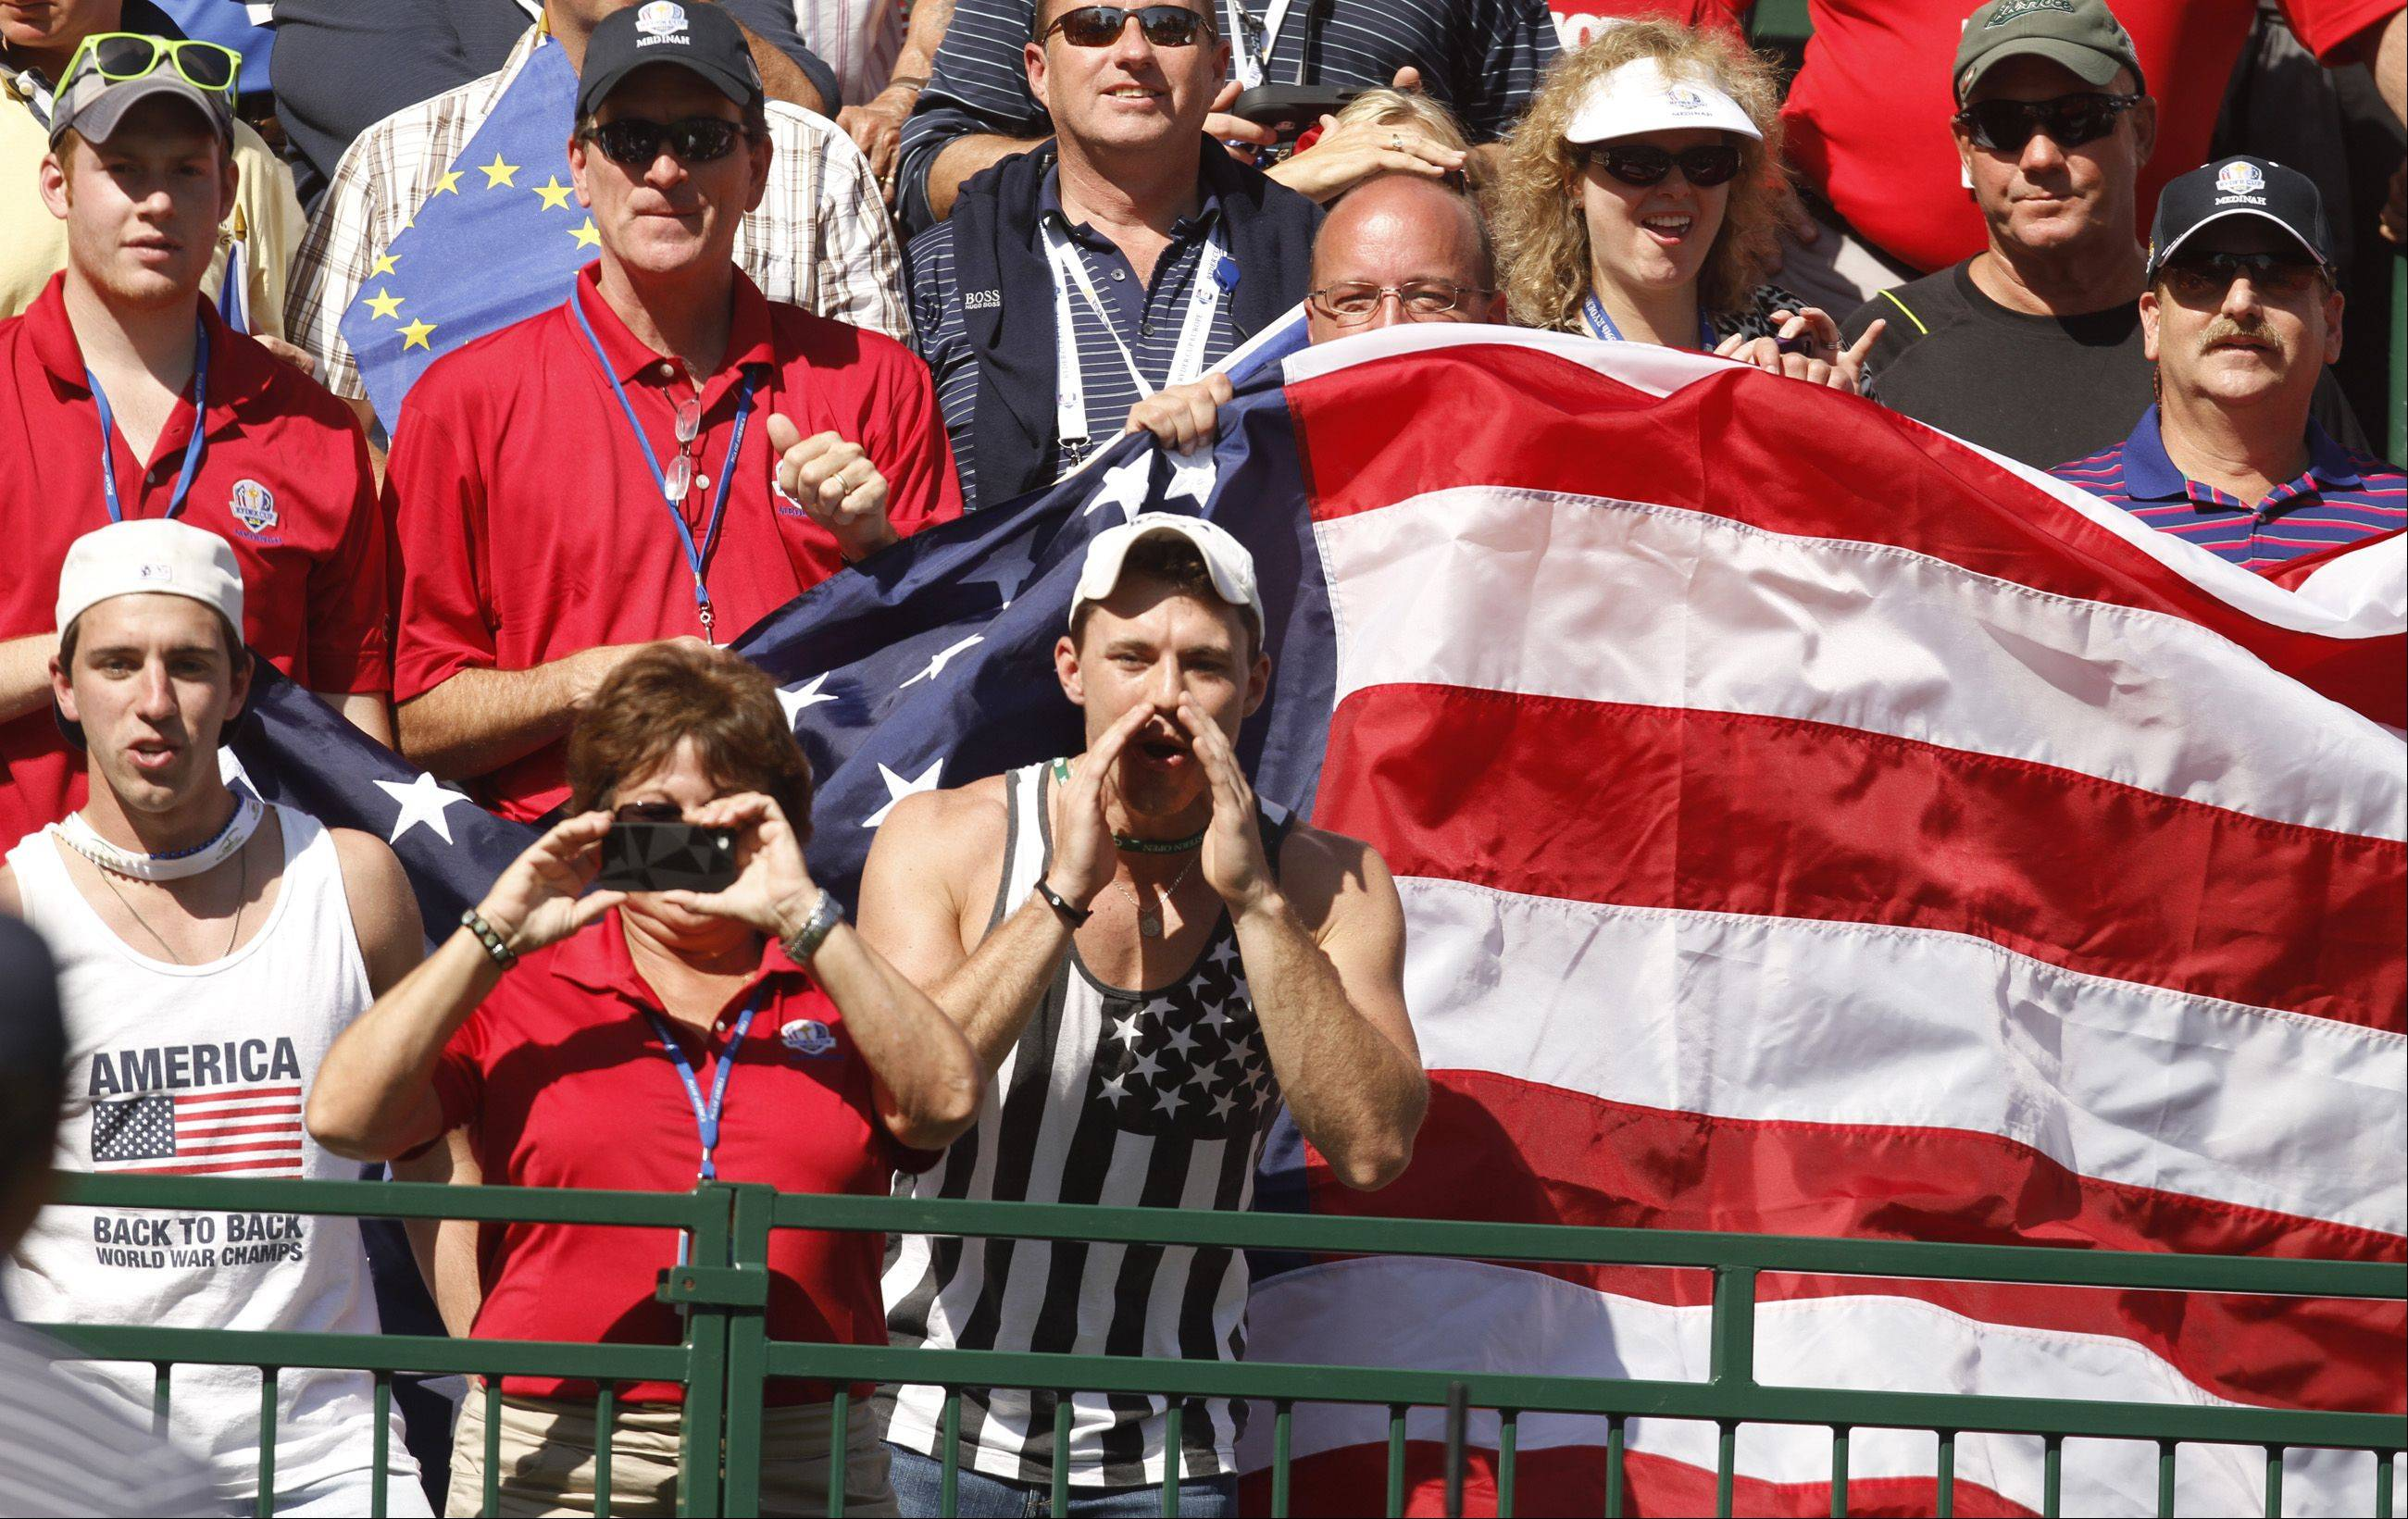 Standing loud and proud, American fans have given plenty of support at Medinah County Club to a USA team on the verge of winning the 39th Ryder Cup.